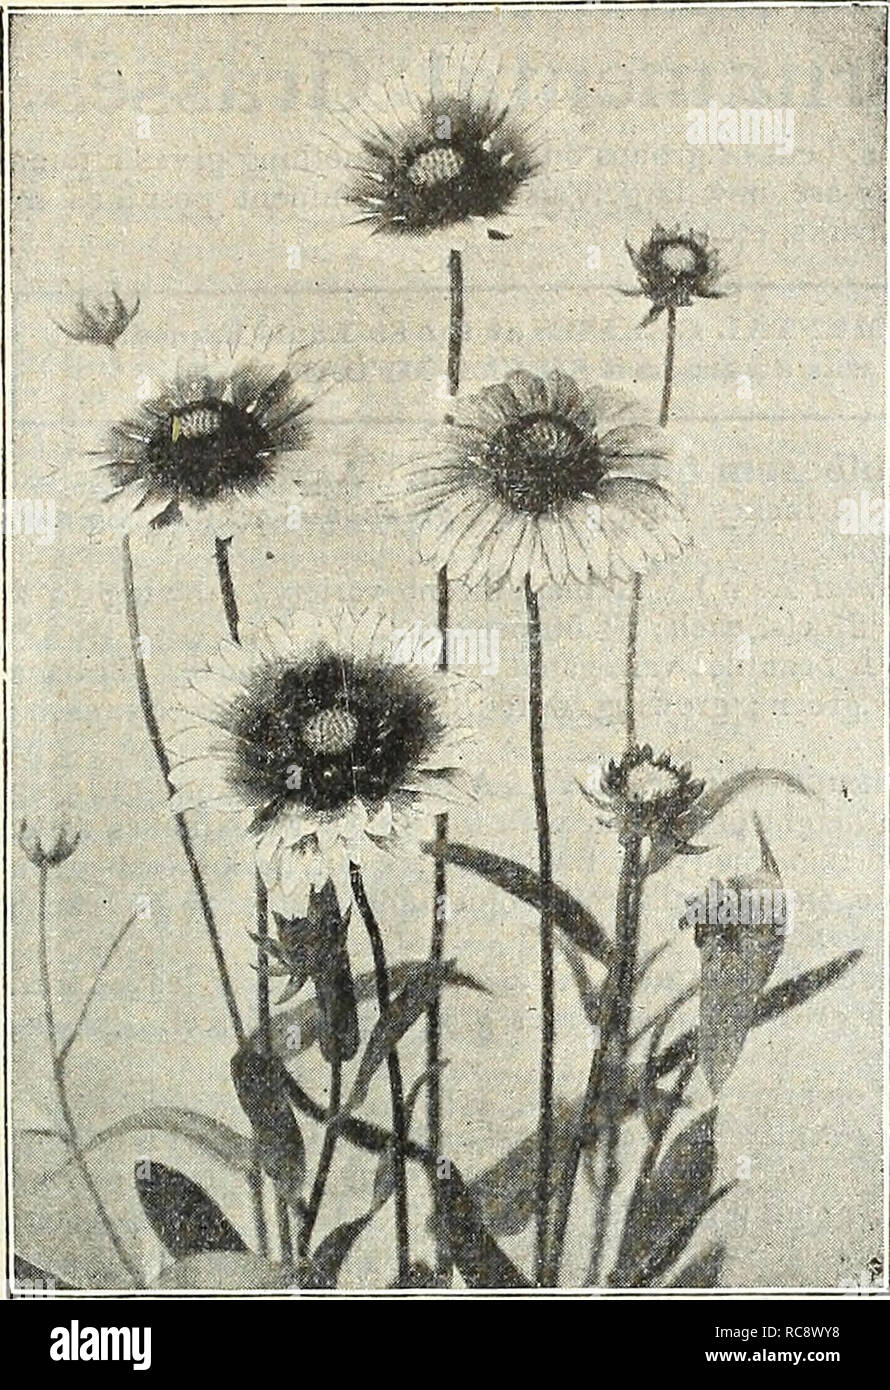 . Dreer's garden book : 1905. Seeds Catalogs; Nursery stock Catalogs; Gardening Equipment and supplies Catalogs; Flowers Seeds Catalogs; Vegetables Seeds Catalogs; Fruit Seeds Catalogs. 181. Gaillardia Gkanimflora. GI^OBUL,ARIA. A particularly pretty plant for a Tricosantha partially shaded position in tfie rockery, with small blue flowers in globular heads during July and August. '2o cts. each; $2.50 per doz. GUNNERA. Scabra. Probably the noblest of all hardy per- ennial decorative foliage plants, with leaves which, under favorable conditions, frequently measure 5 to 10 feet across, a well gr Stock Photo